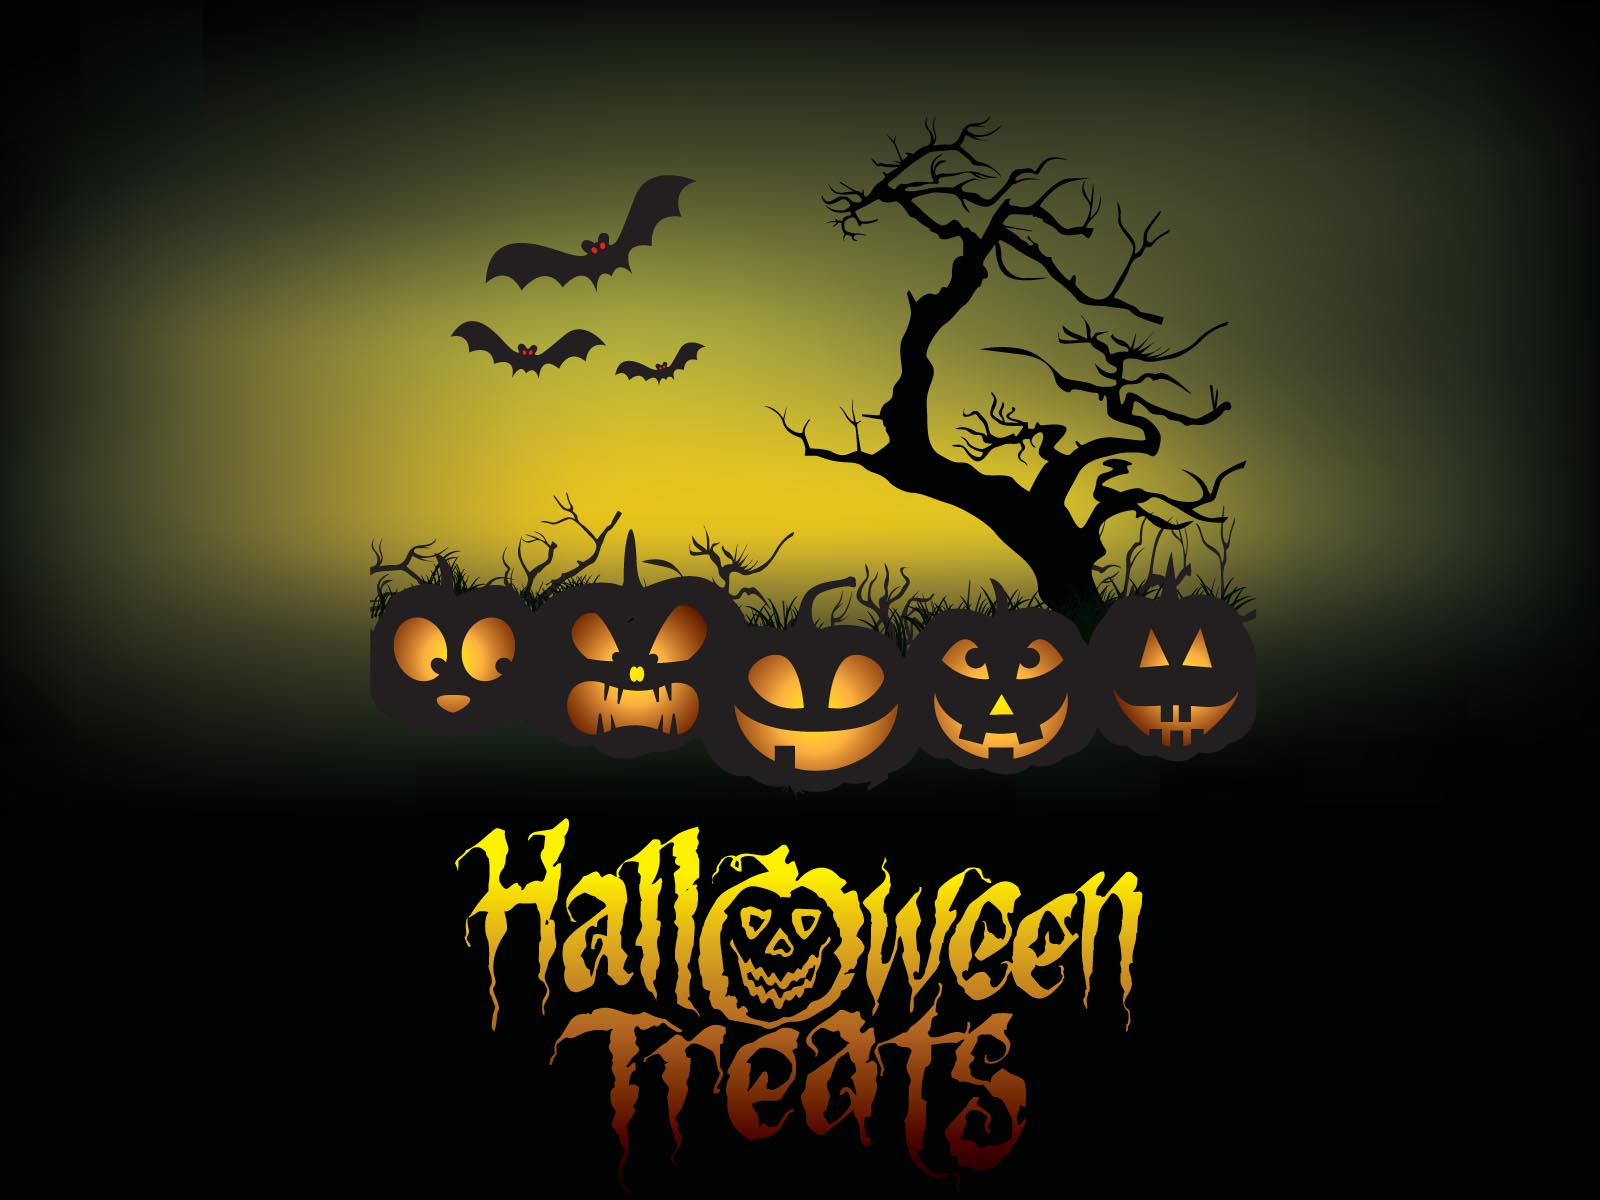 Halloween Poster Background Free.Halloween Treats Poster Backgrounds 3d Games Templates